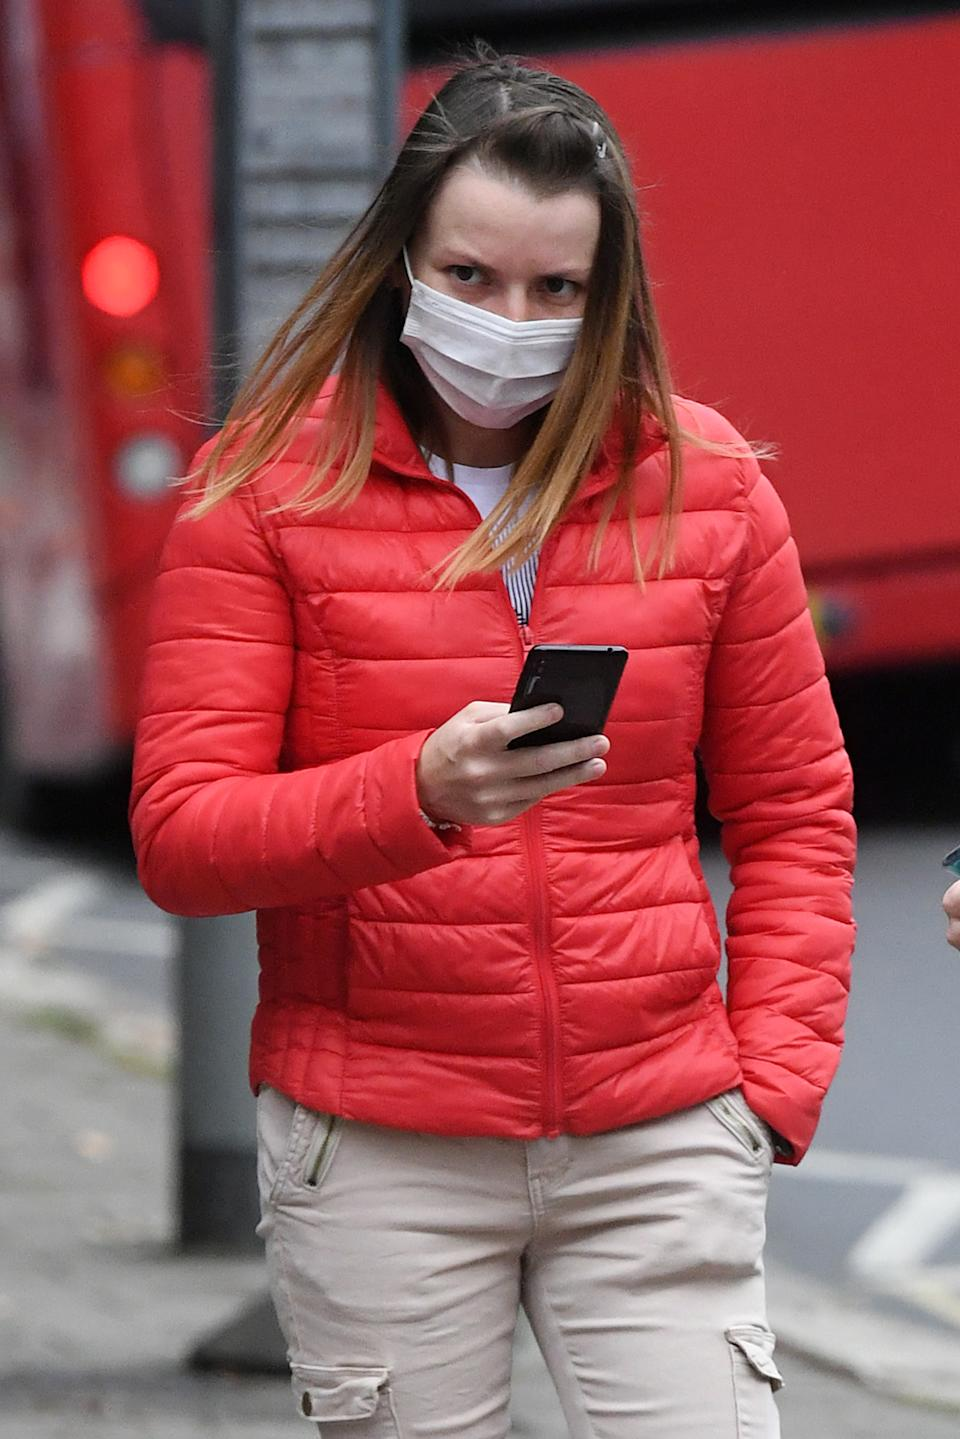 Aurora Iacomi, 31, arrives at Inner London Crown Court for sentencing after she admitted putting cleaning fluid into her supervisor's coffee flask at Fenchurch Street railway station on April 22.